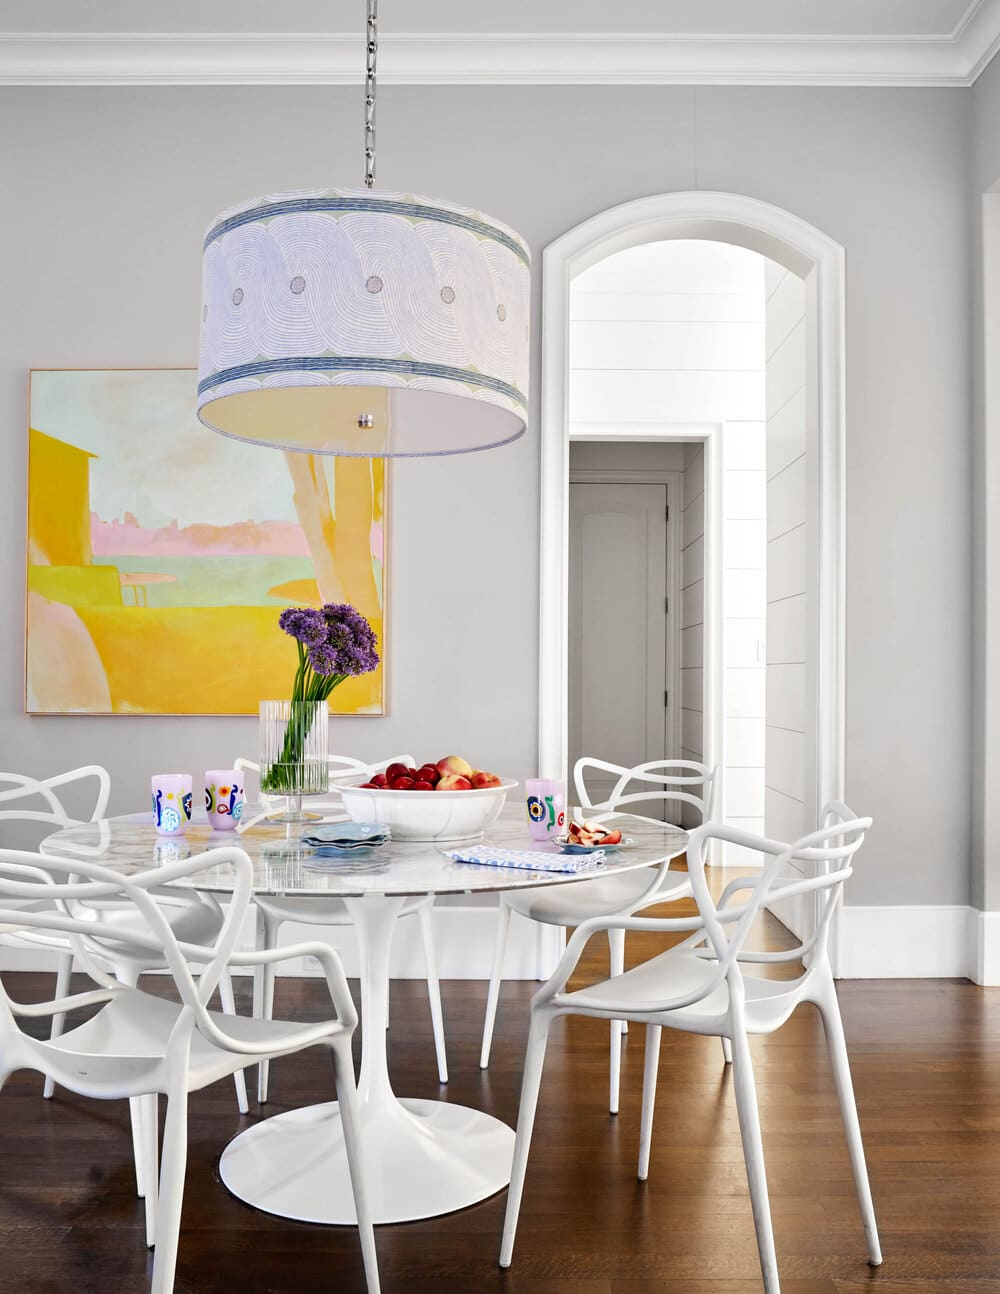 Mary Beth Wagner Interiors - Nathan Schroder Photography breakfast room